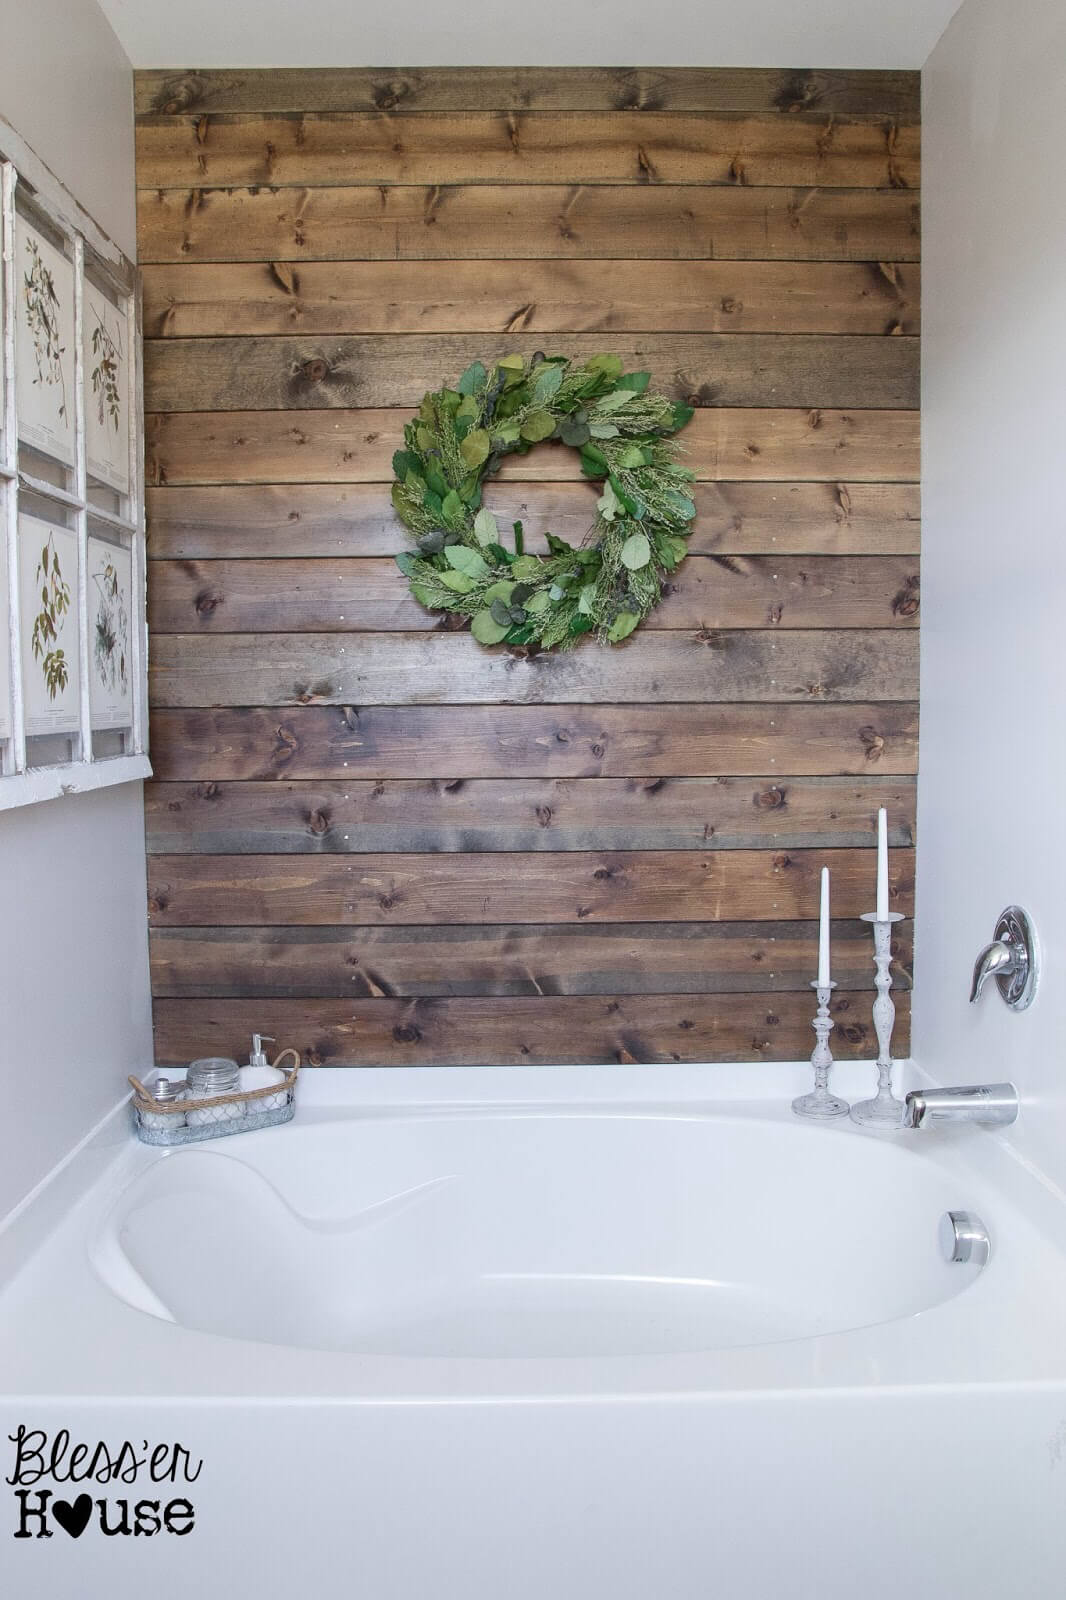 34 Diy Reclaimed Wood Projects Ideas And Designs For 2018